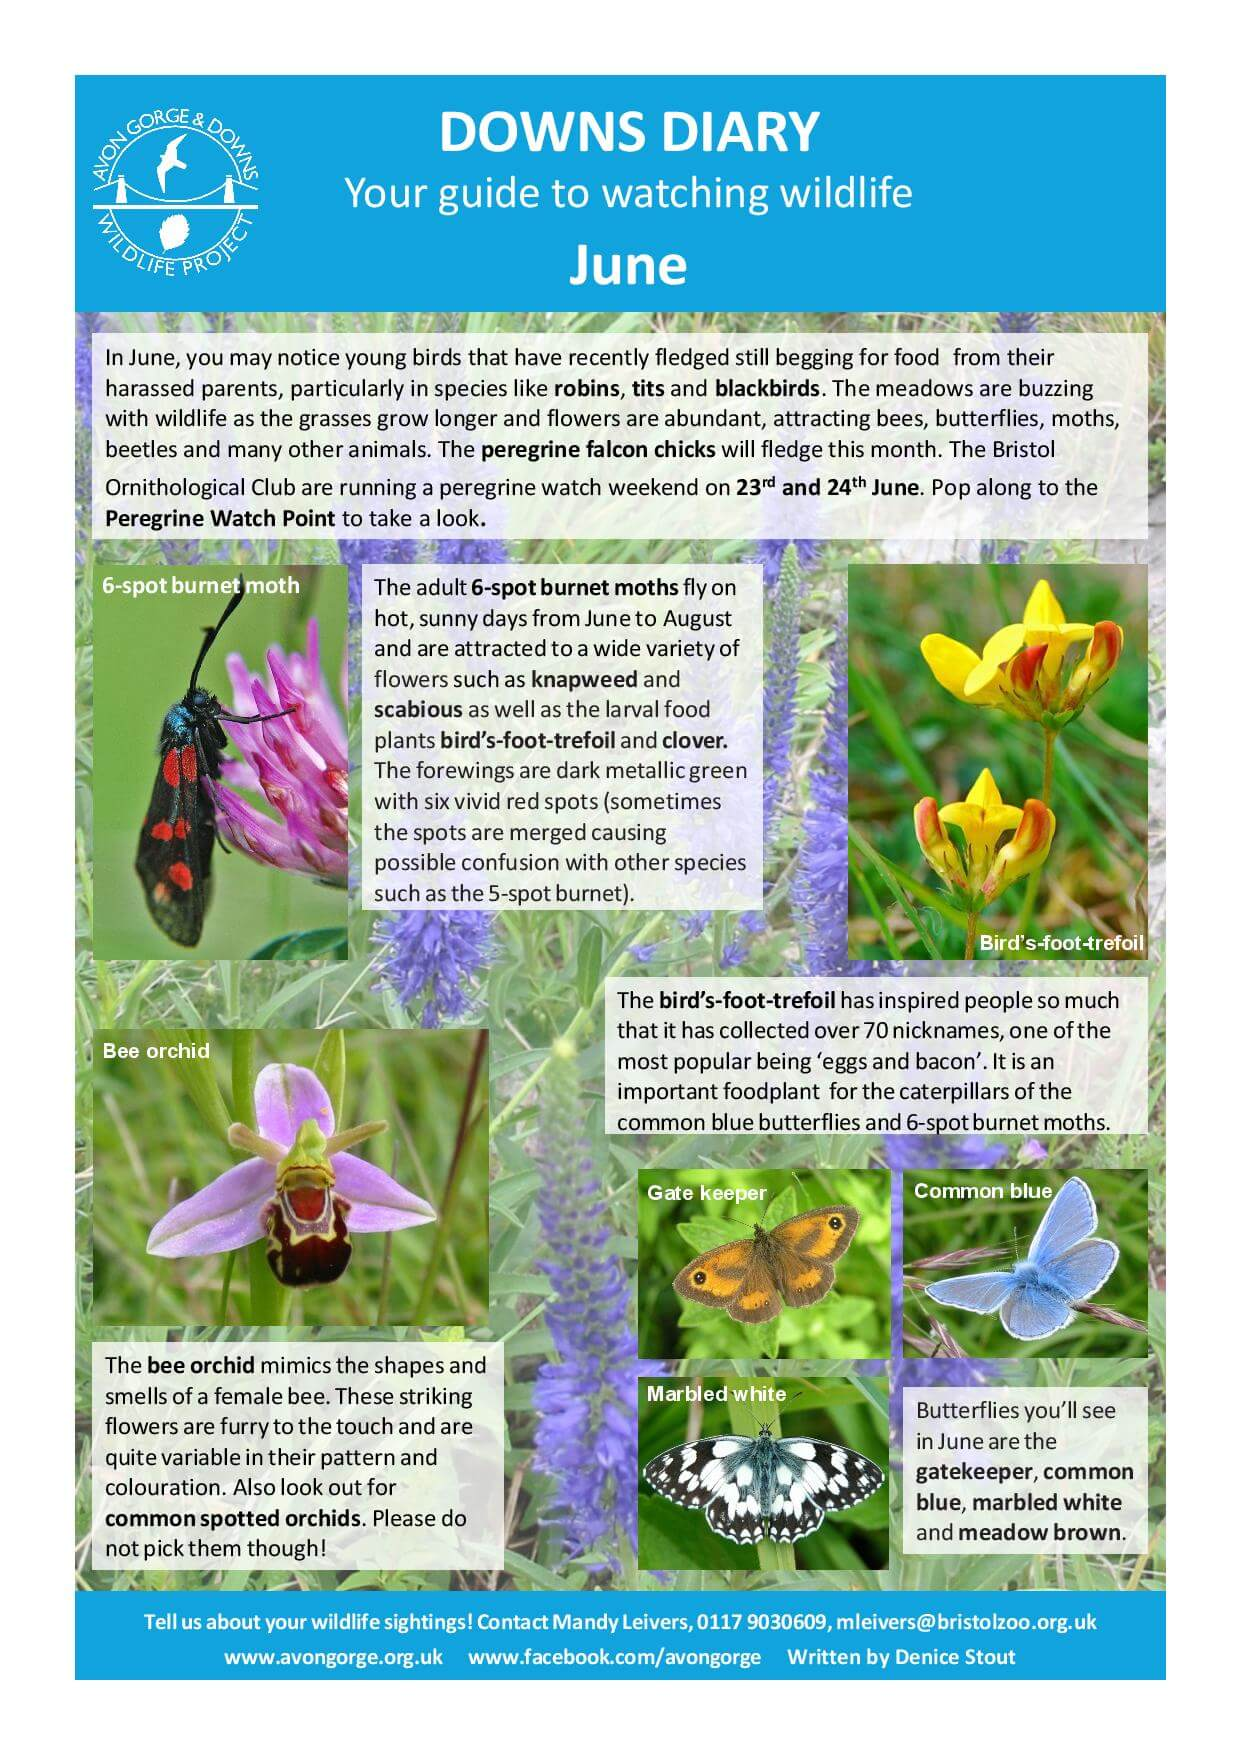 The Downs diary June